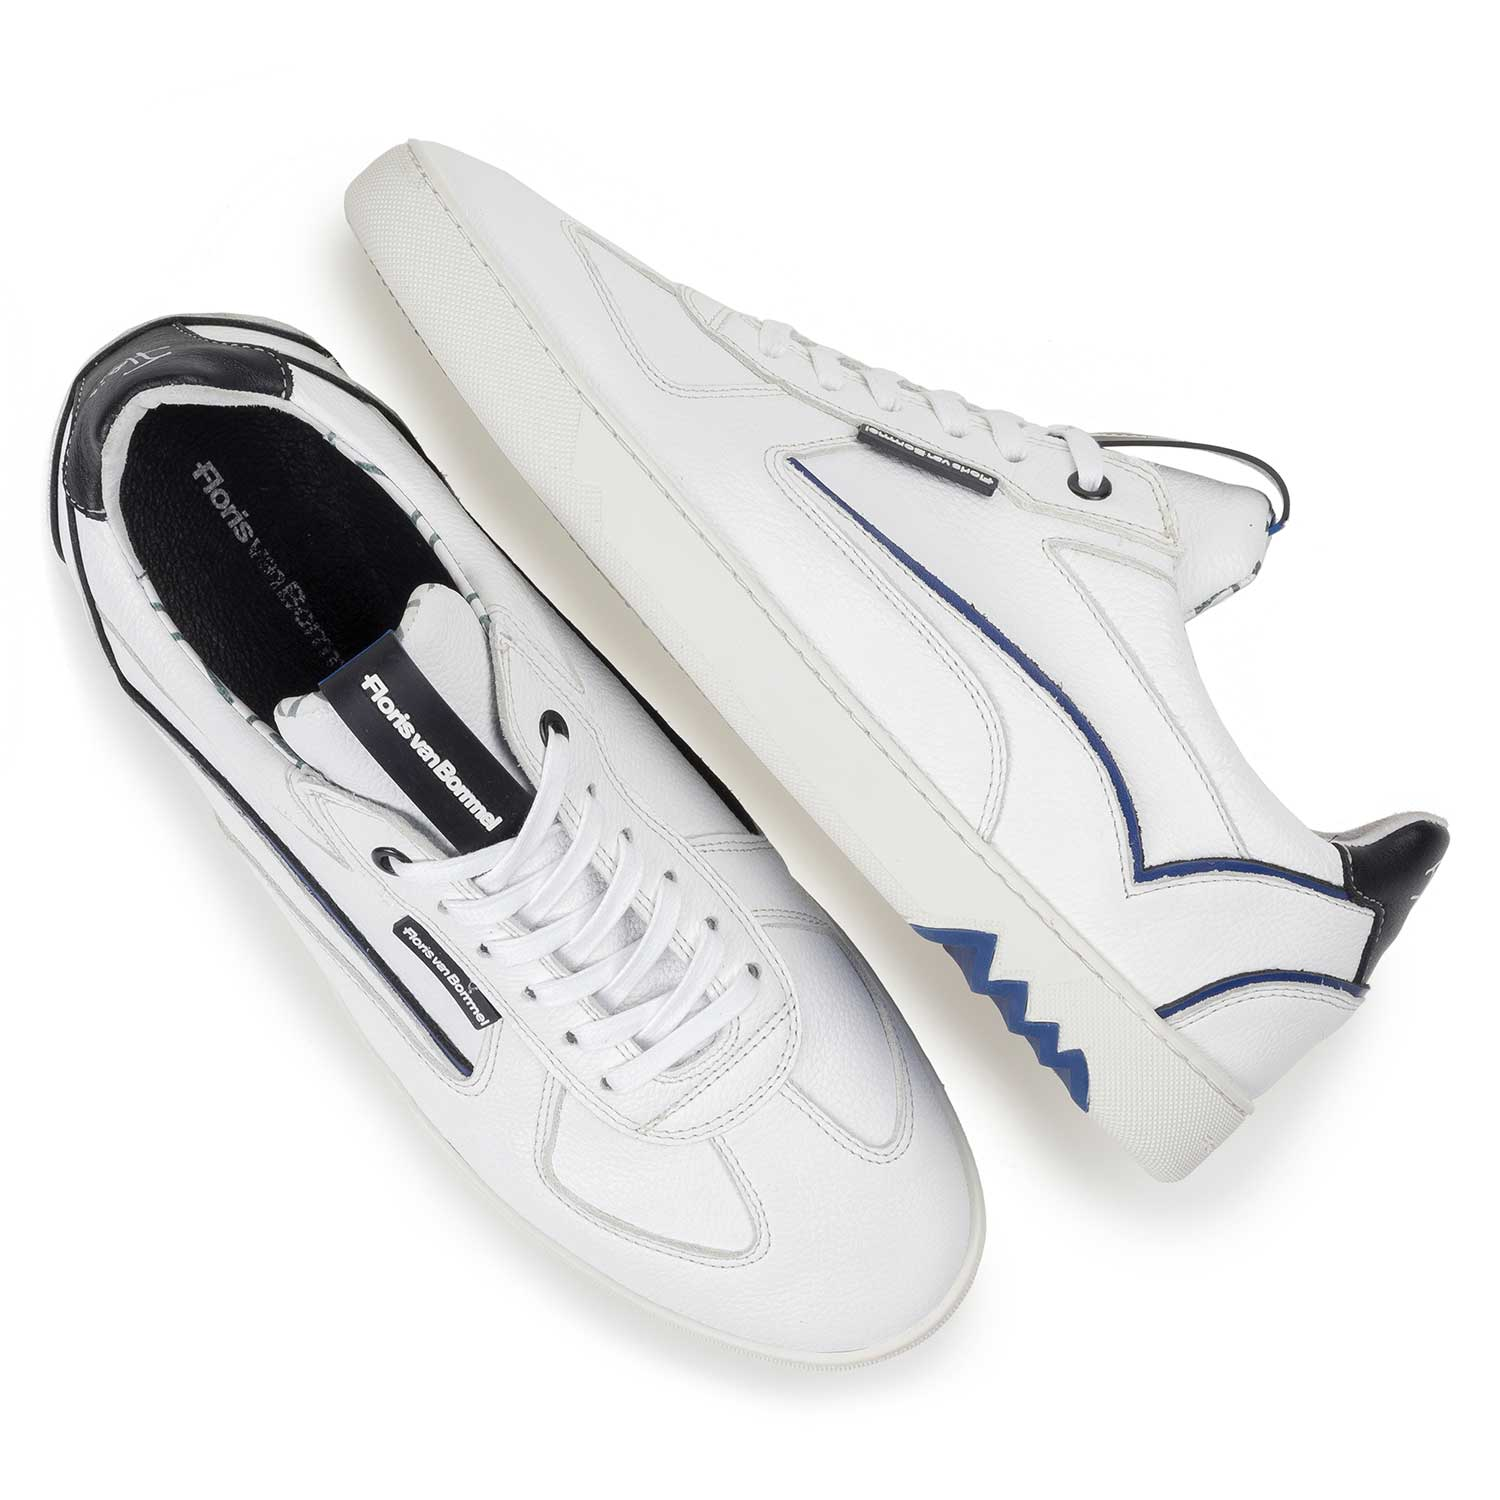 16342/11 - White calf leather sneaker